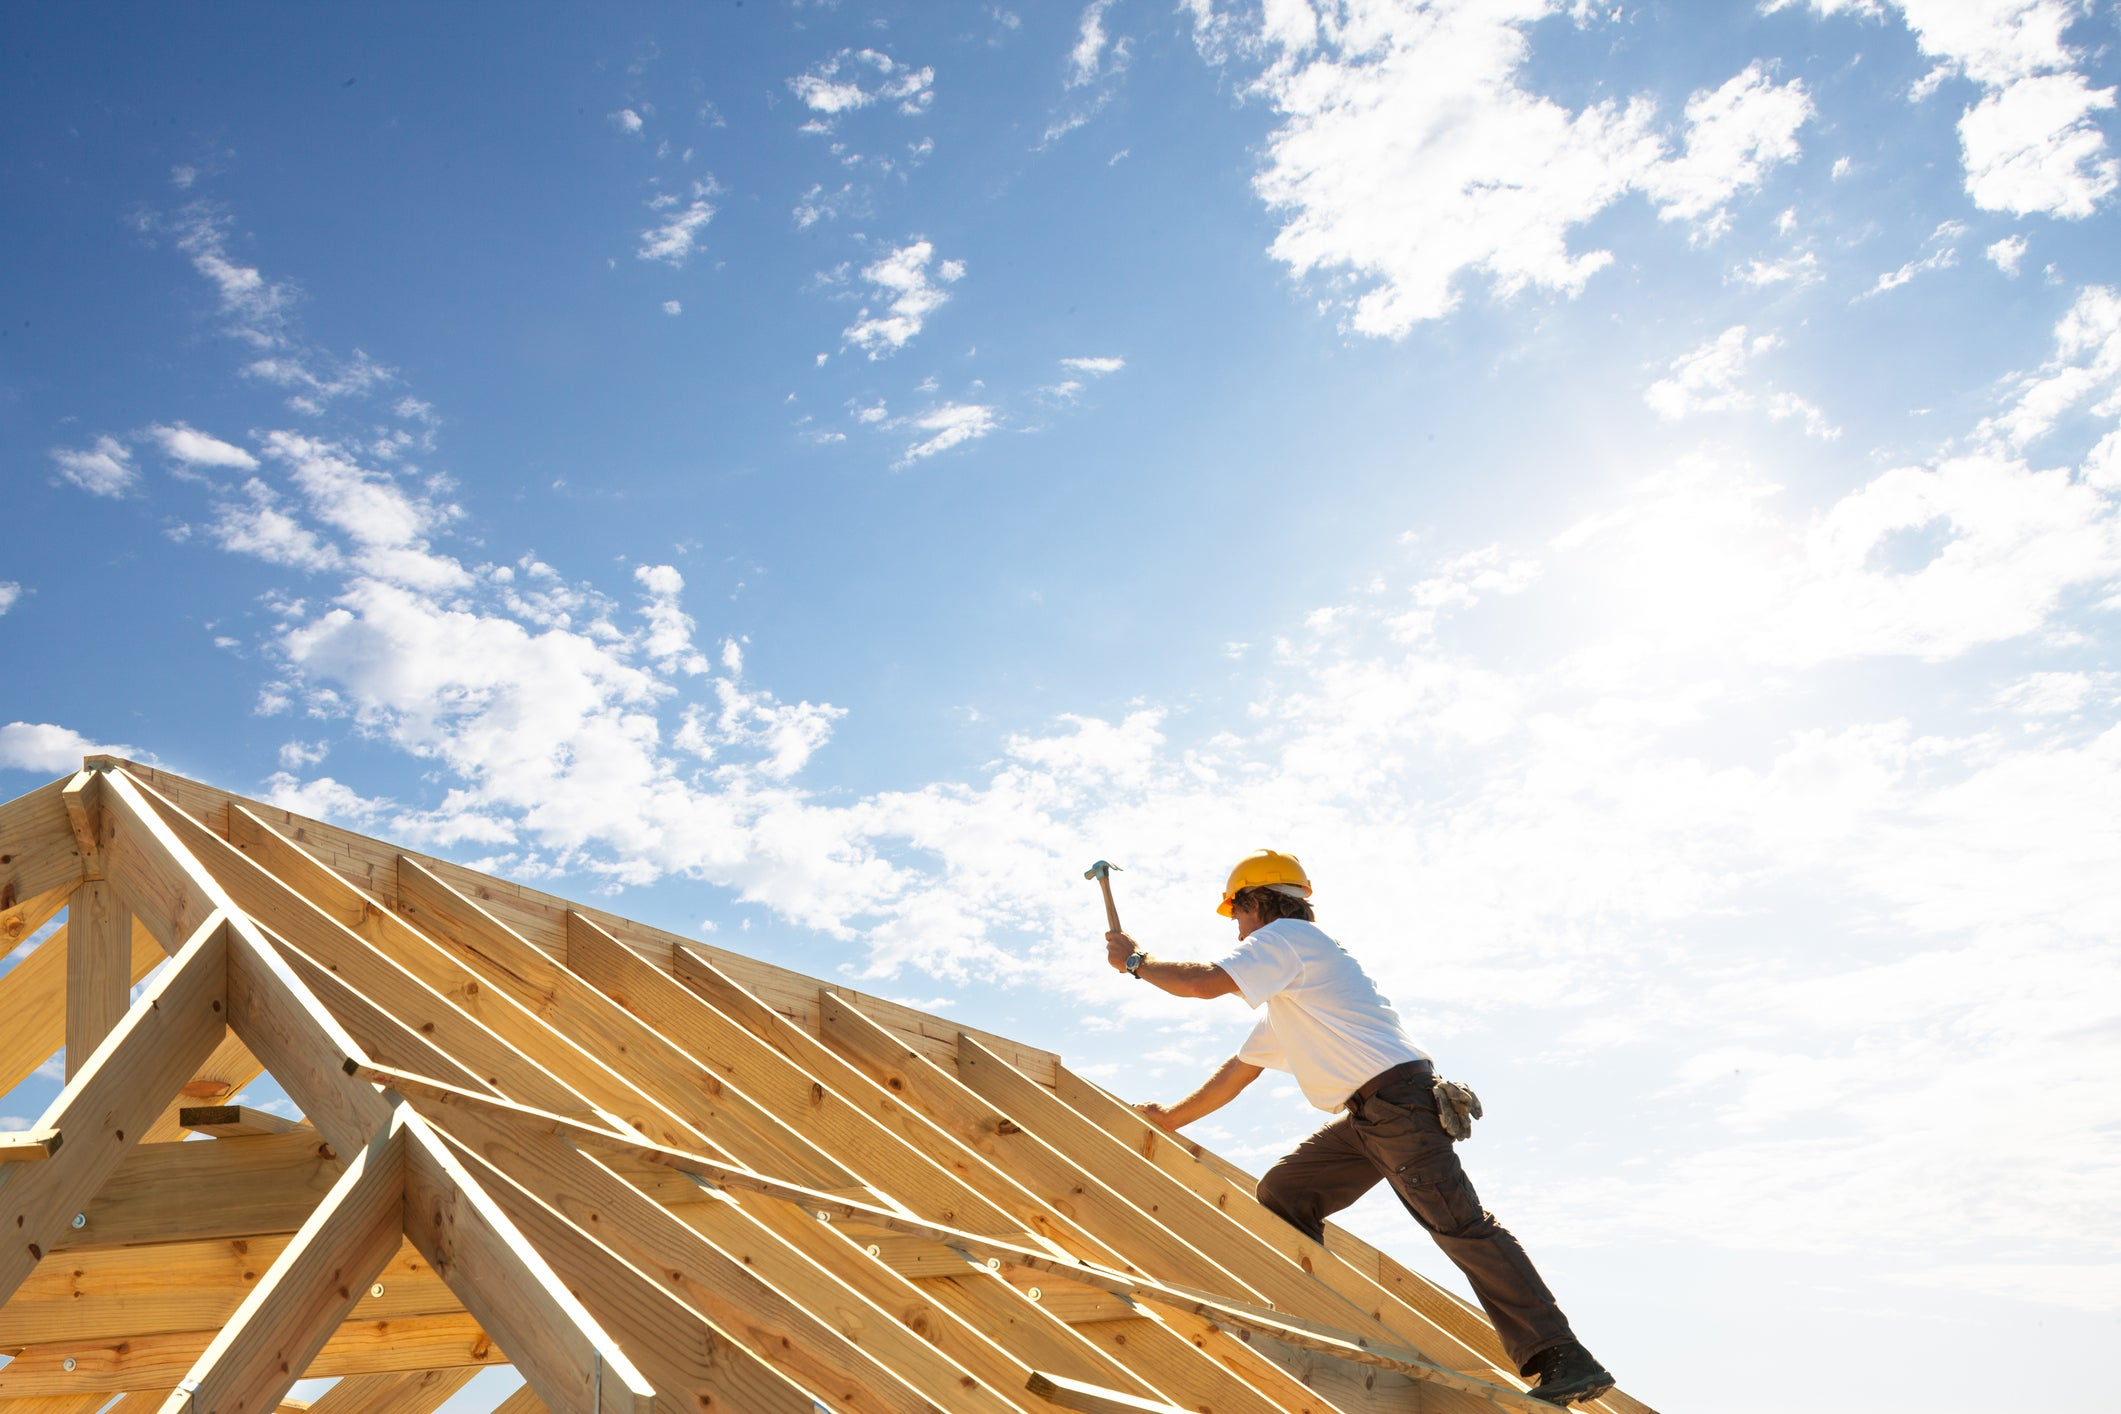 5 Top Construction Stocks For The Housing Rebound The Motley Fool